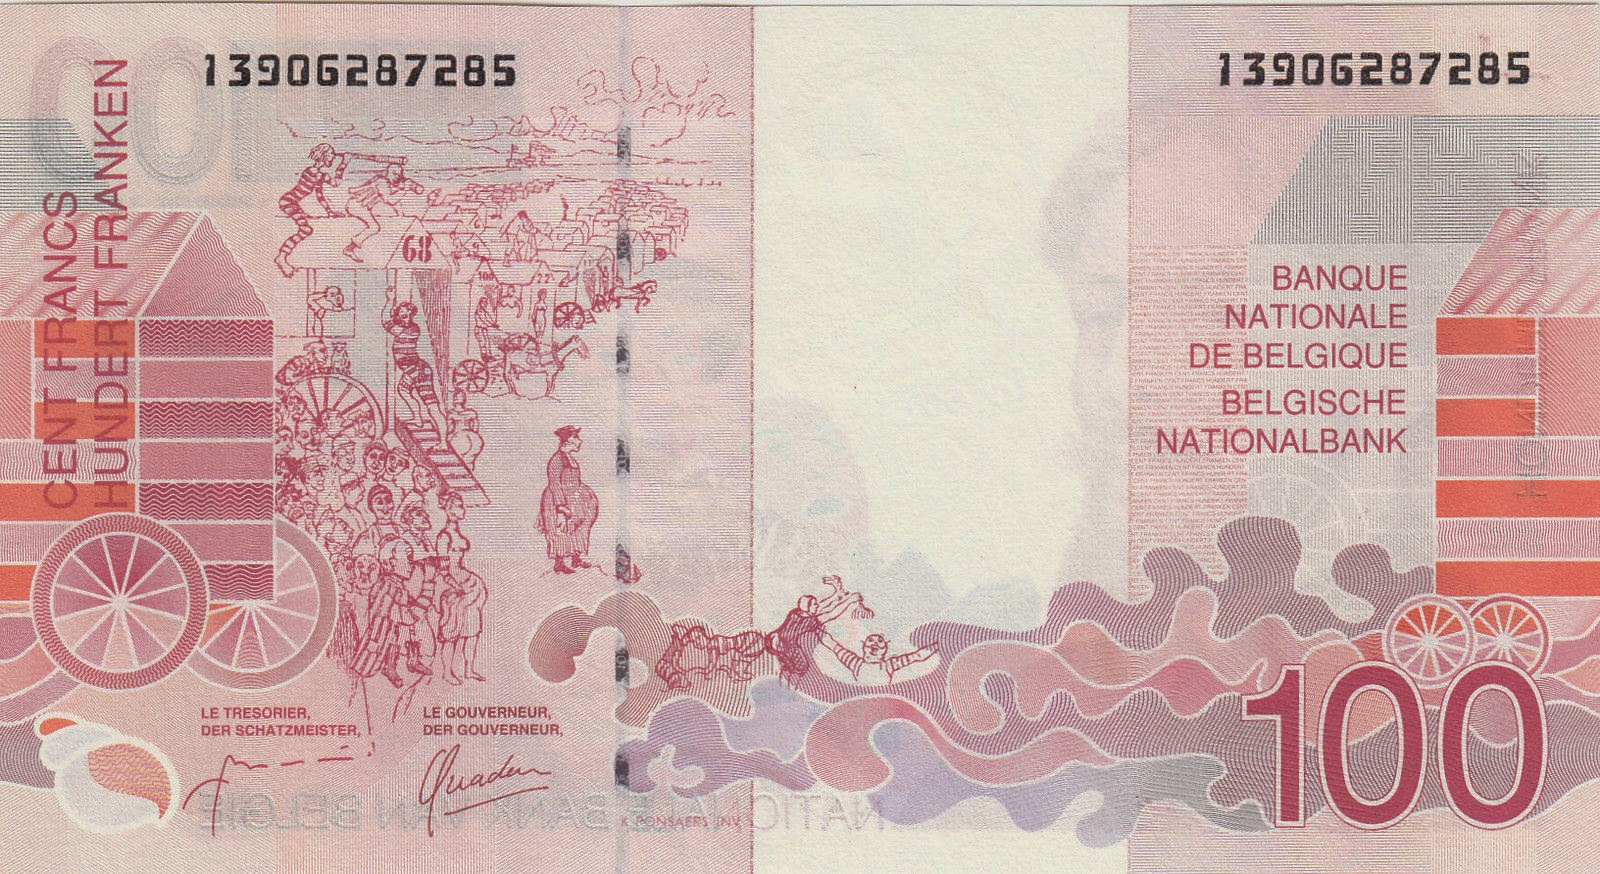 "Belgium Money Currency 100 Belgian Francs banknote 1995 ""The Baths of Ostend"" by James Ensor"